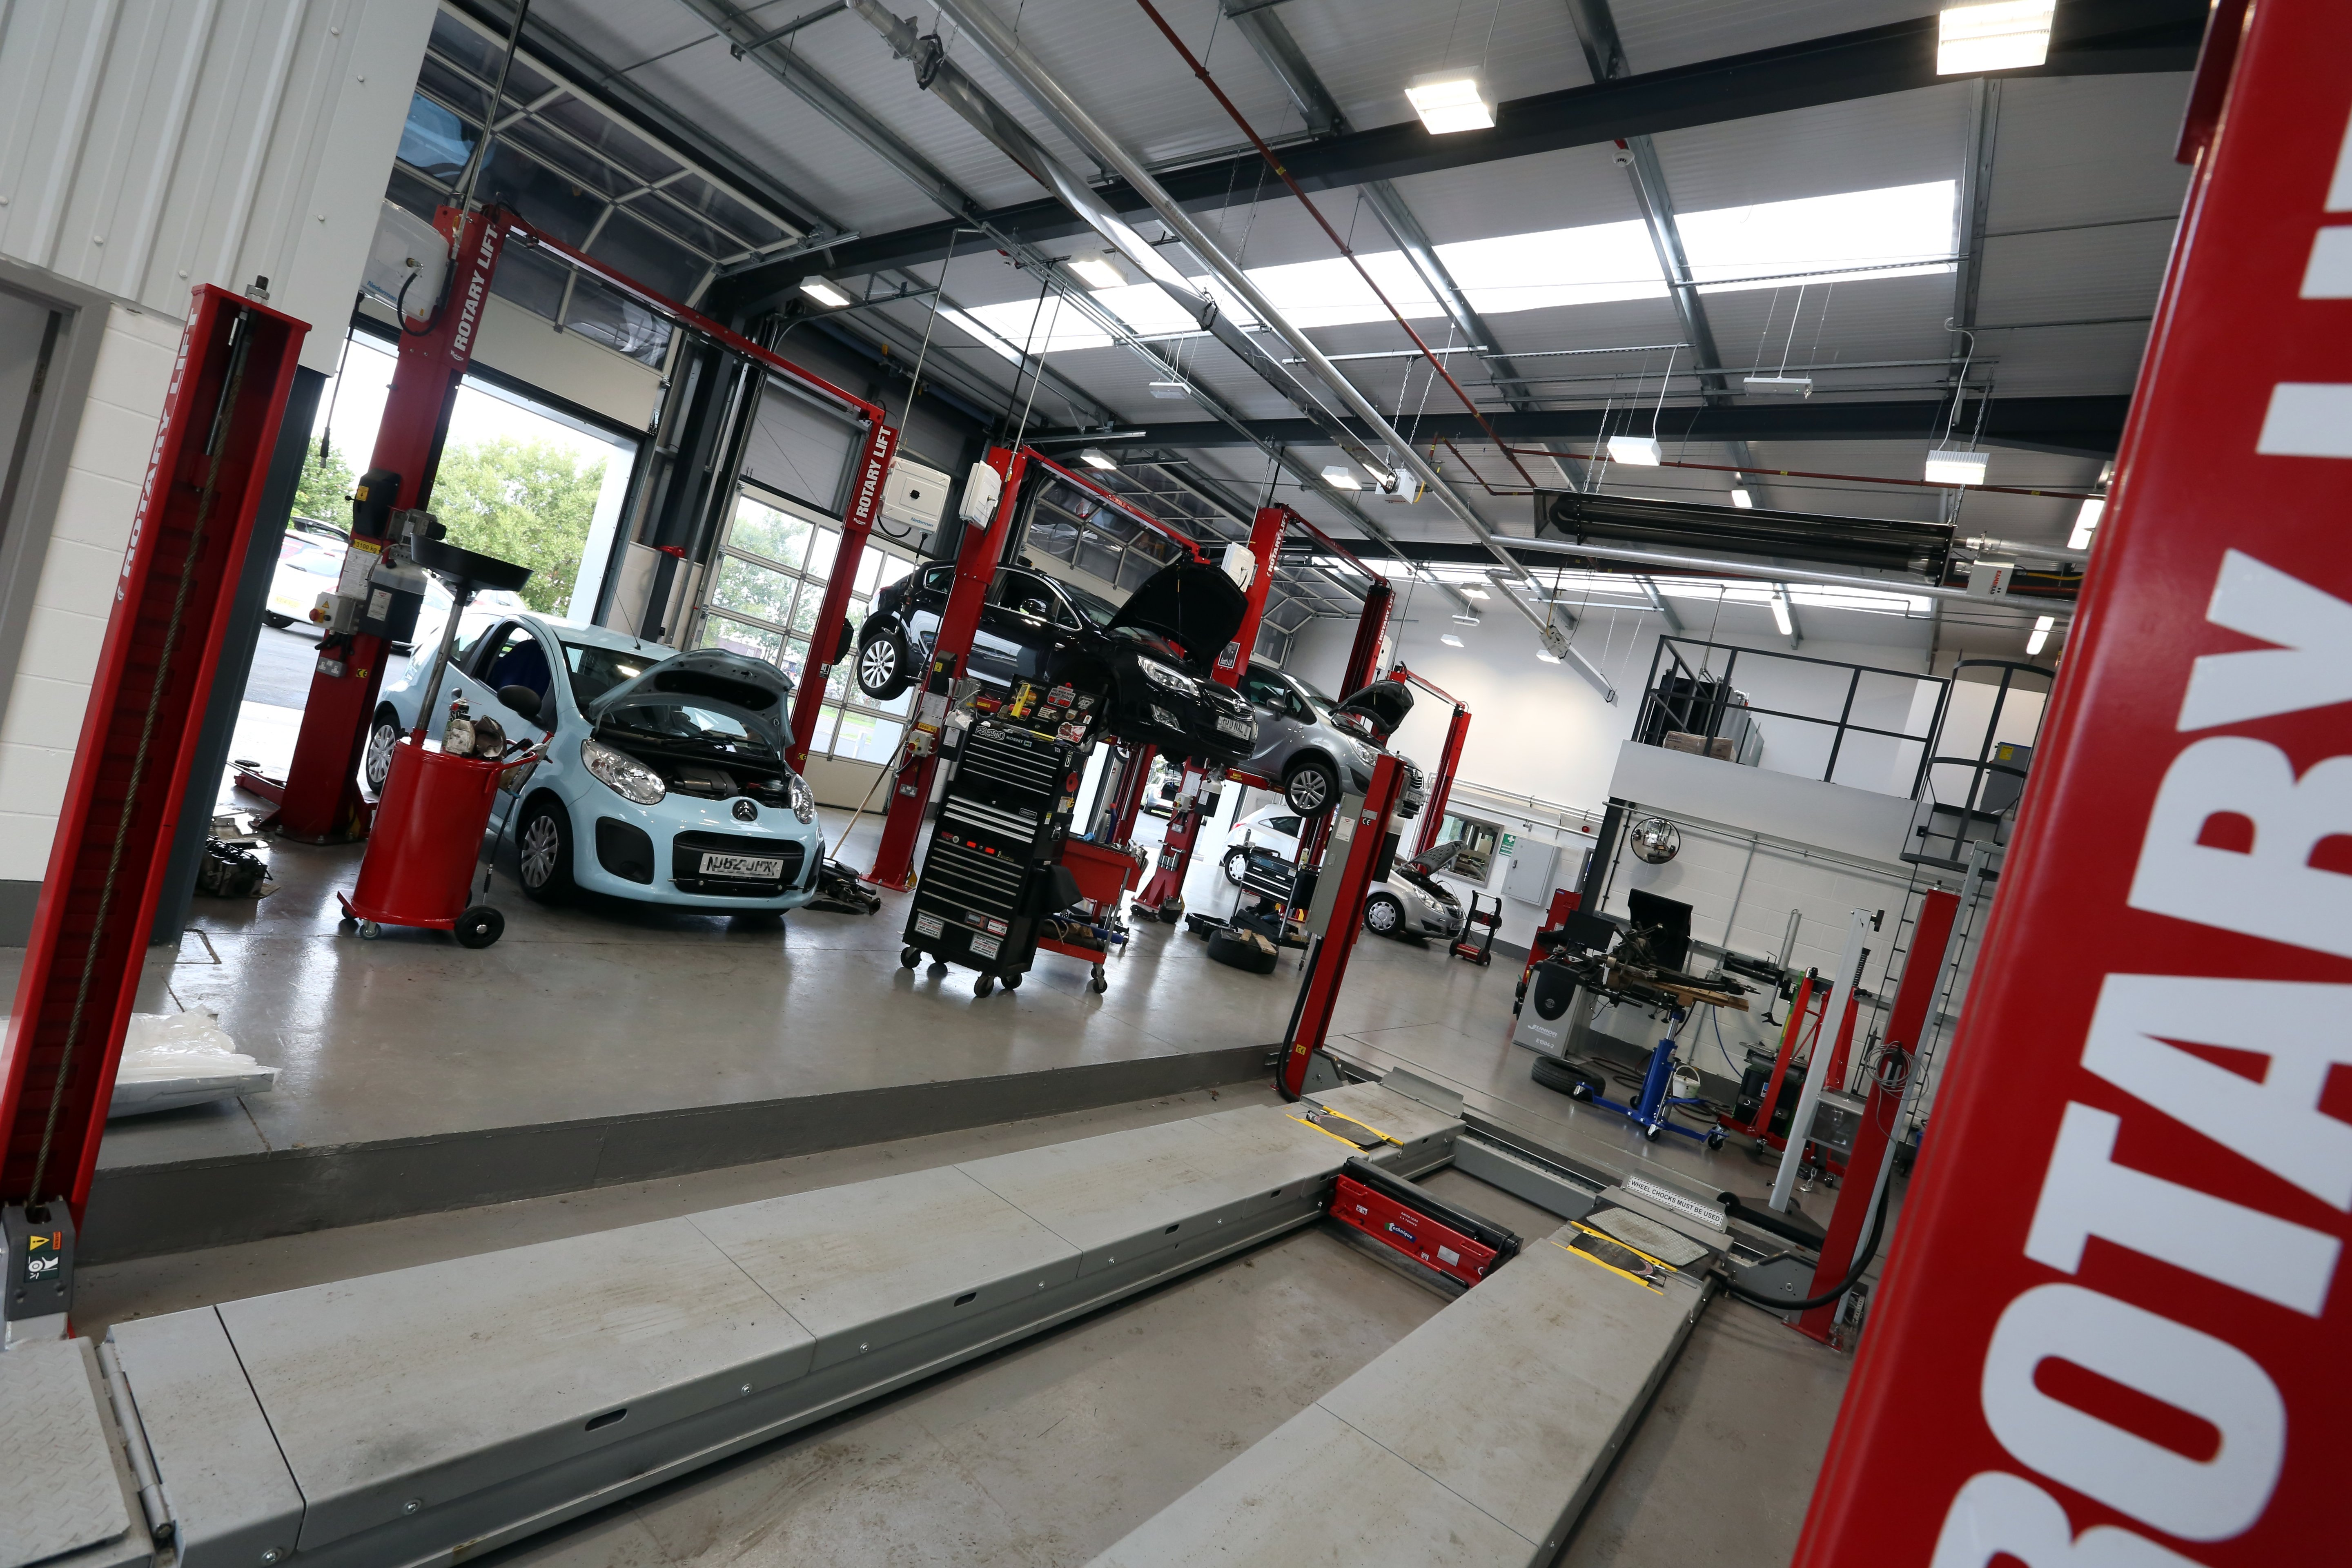 Auto Garage Tools For Sale: WE HELPED BRING DAVIDSONS NEWEST VAUXHALL DEALERSHIP TO